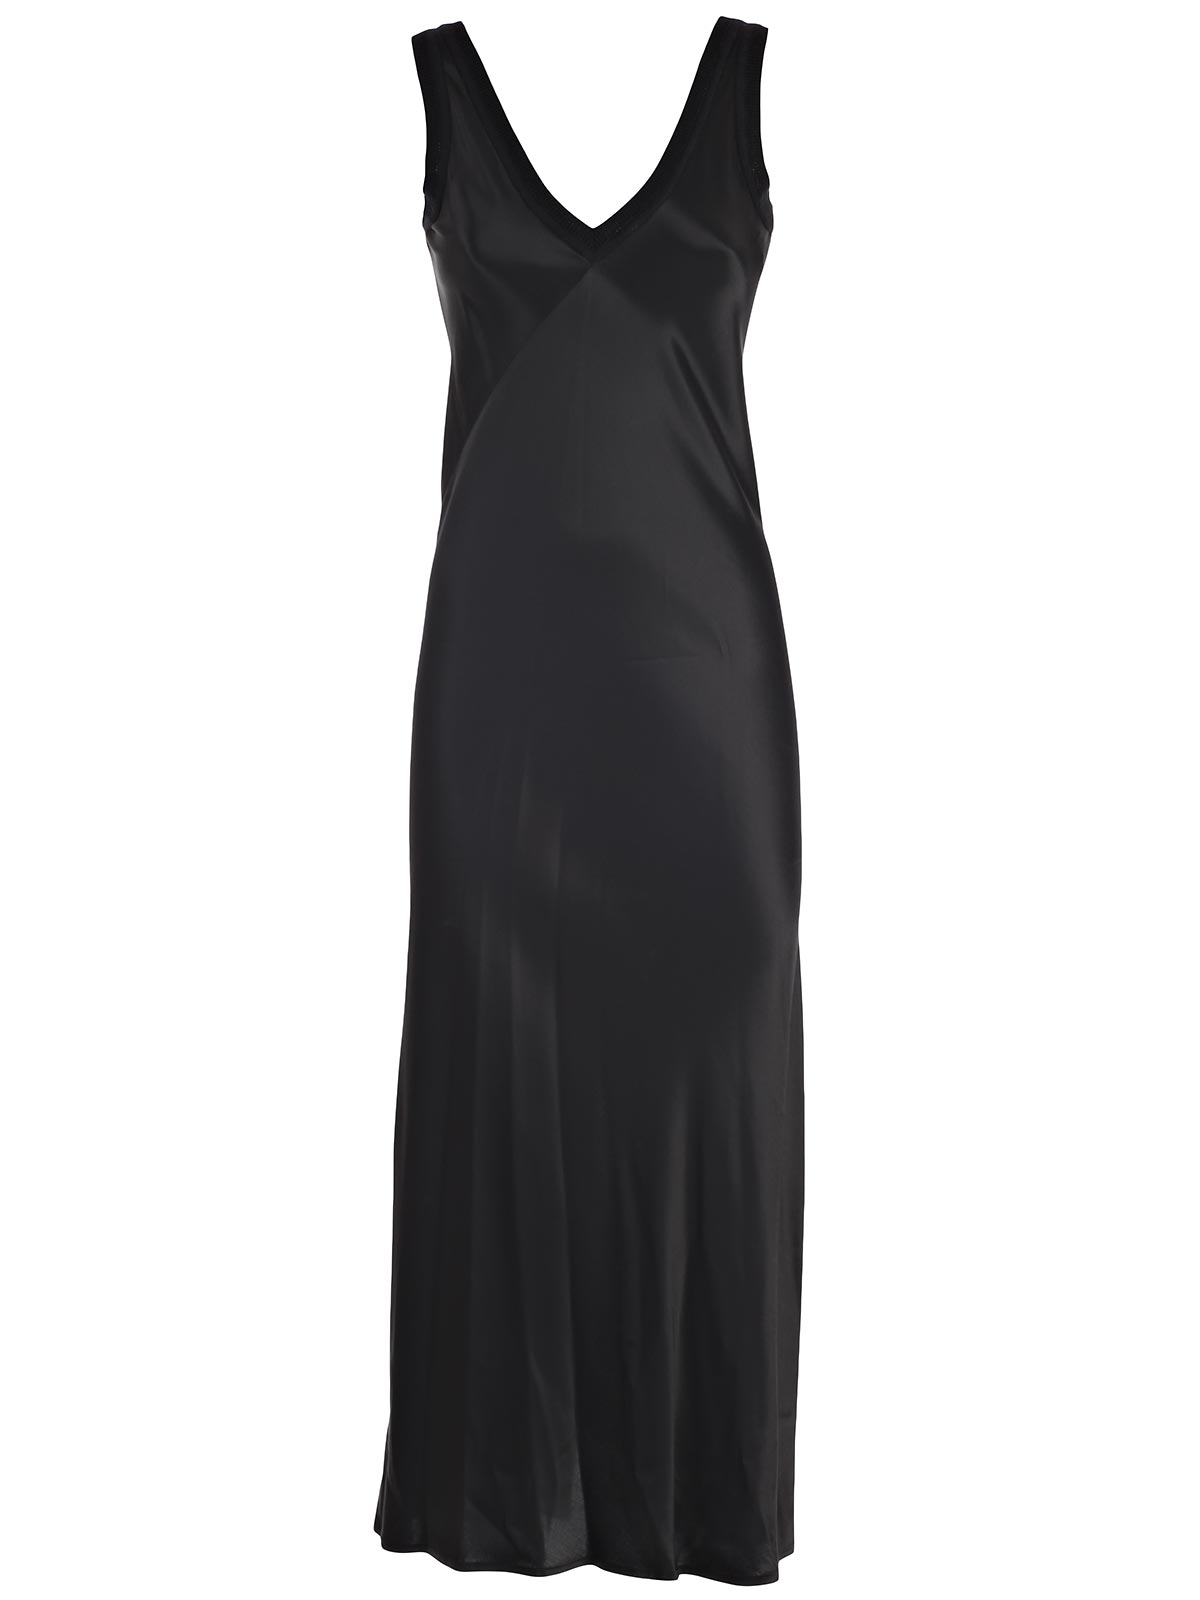 Picture of DKNY DRESS